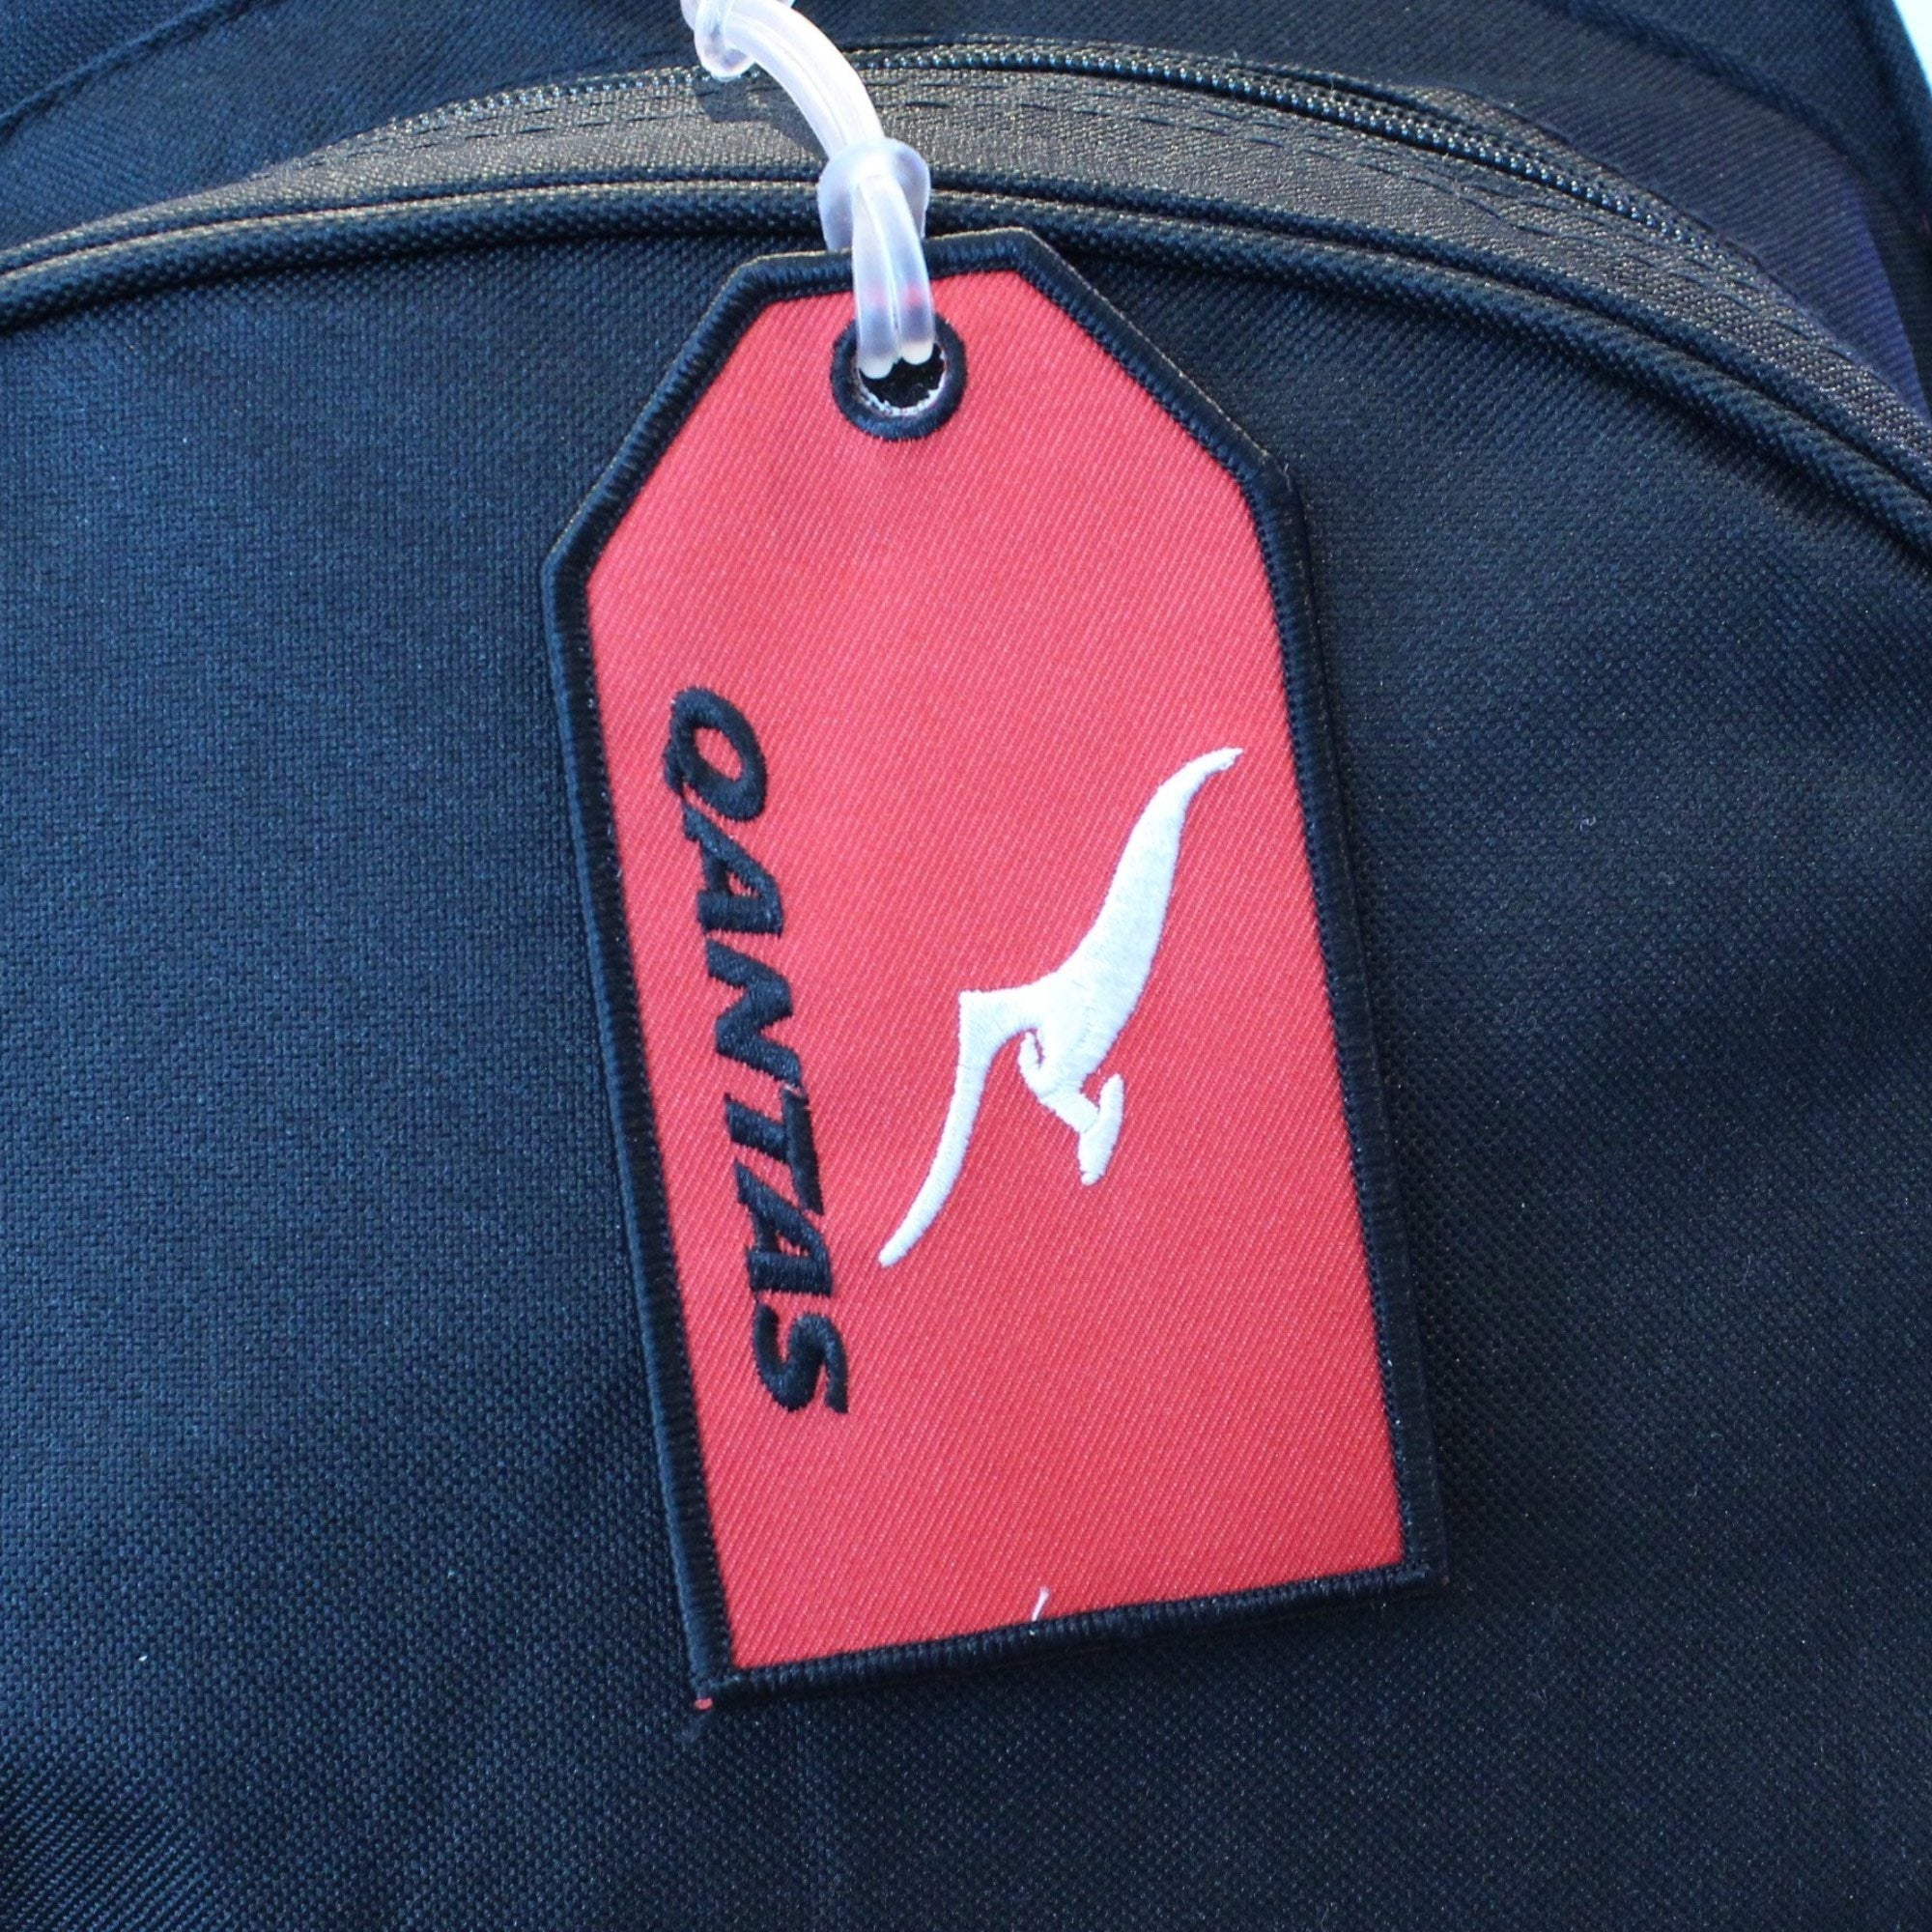 Qantas Bag Tag